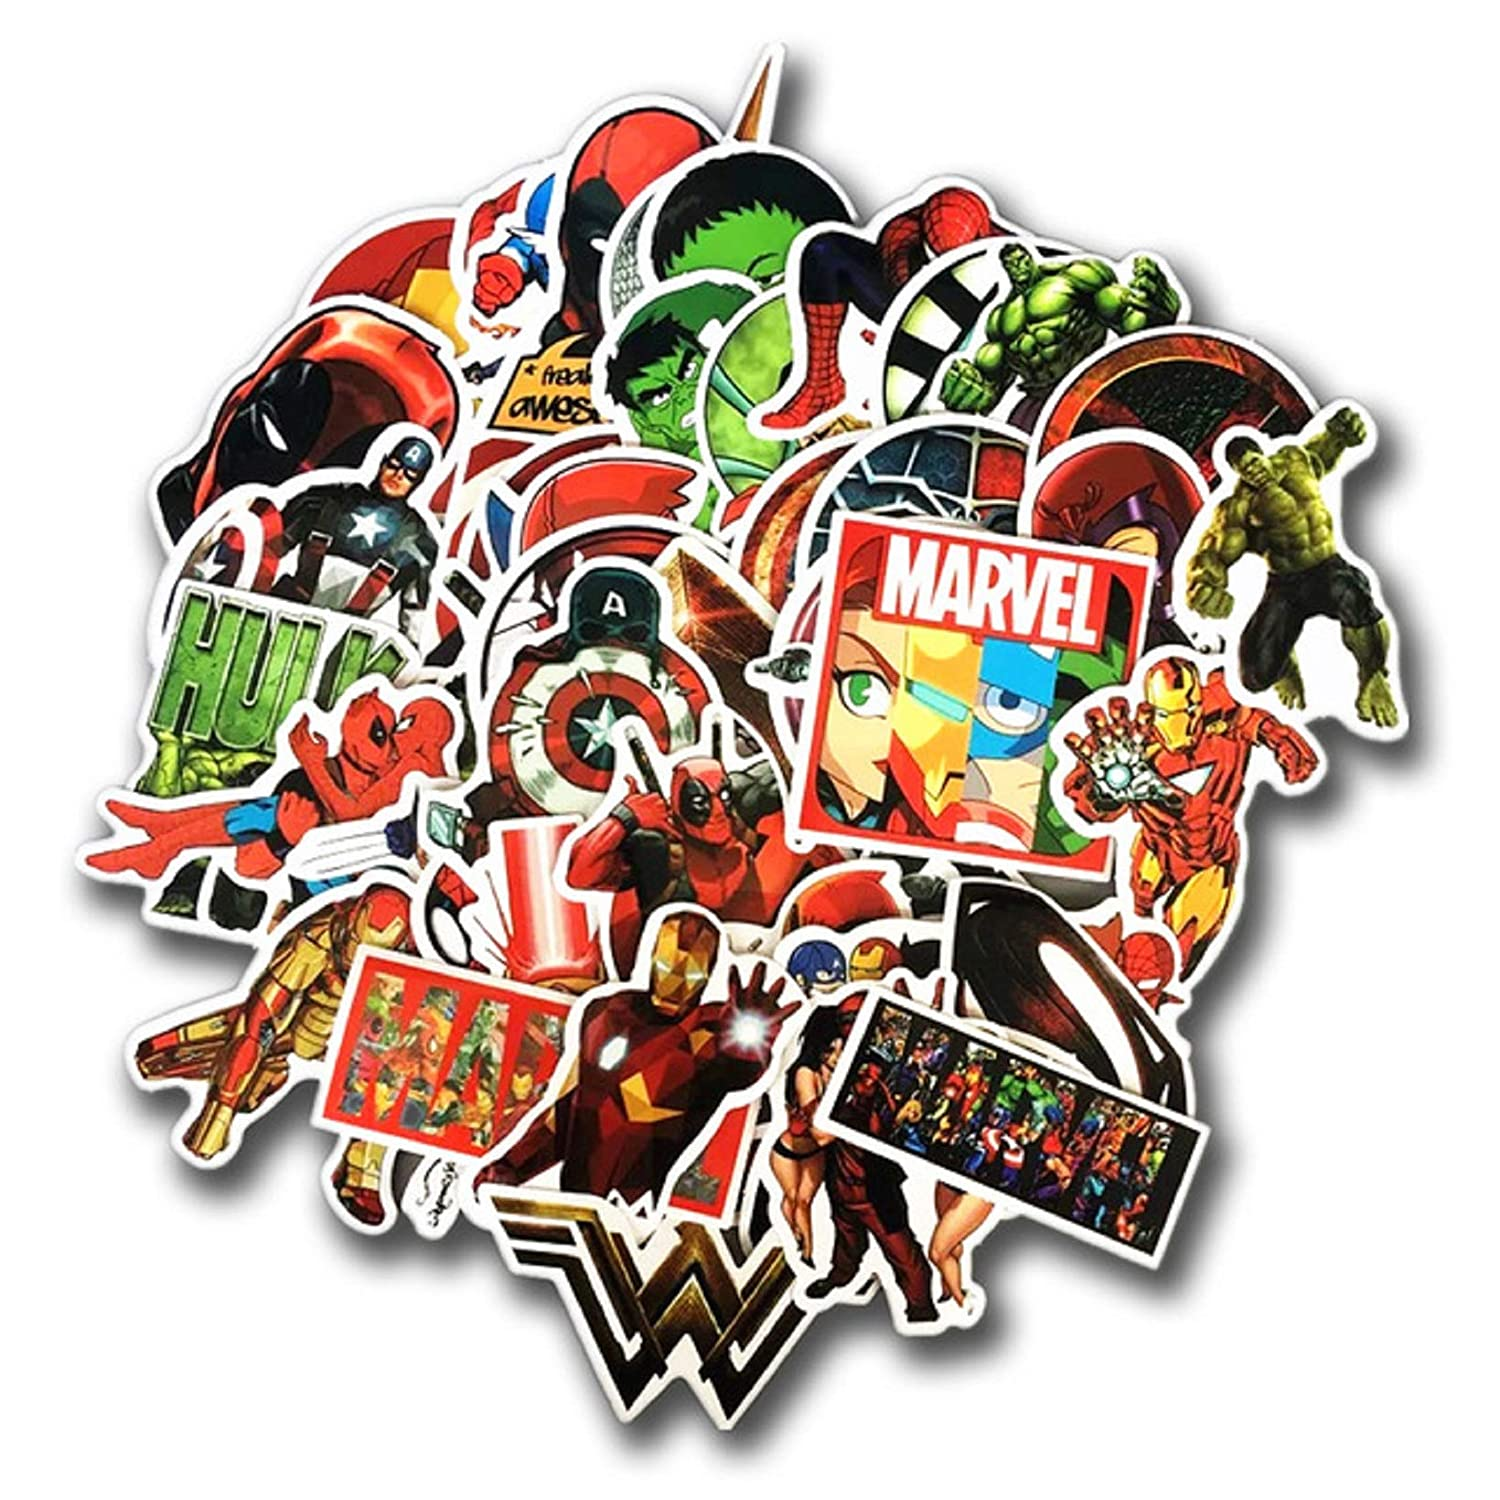 New 50 pcs lot stickers for marvel super hero dc for car laptop notebook decal fridge skateboard batman superman hulk iron man 1 amazon ca electronics